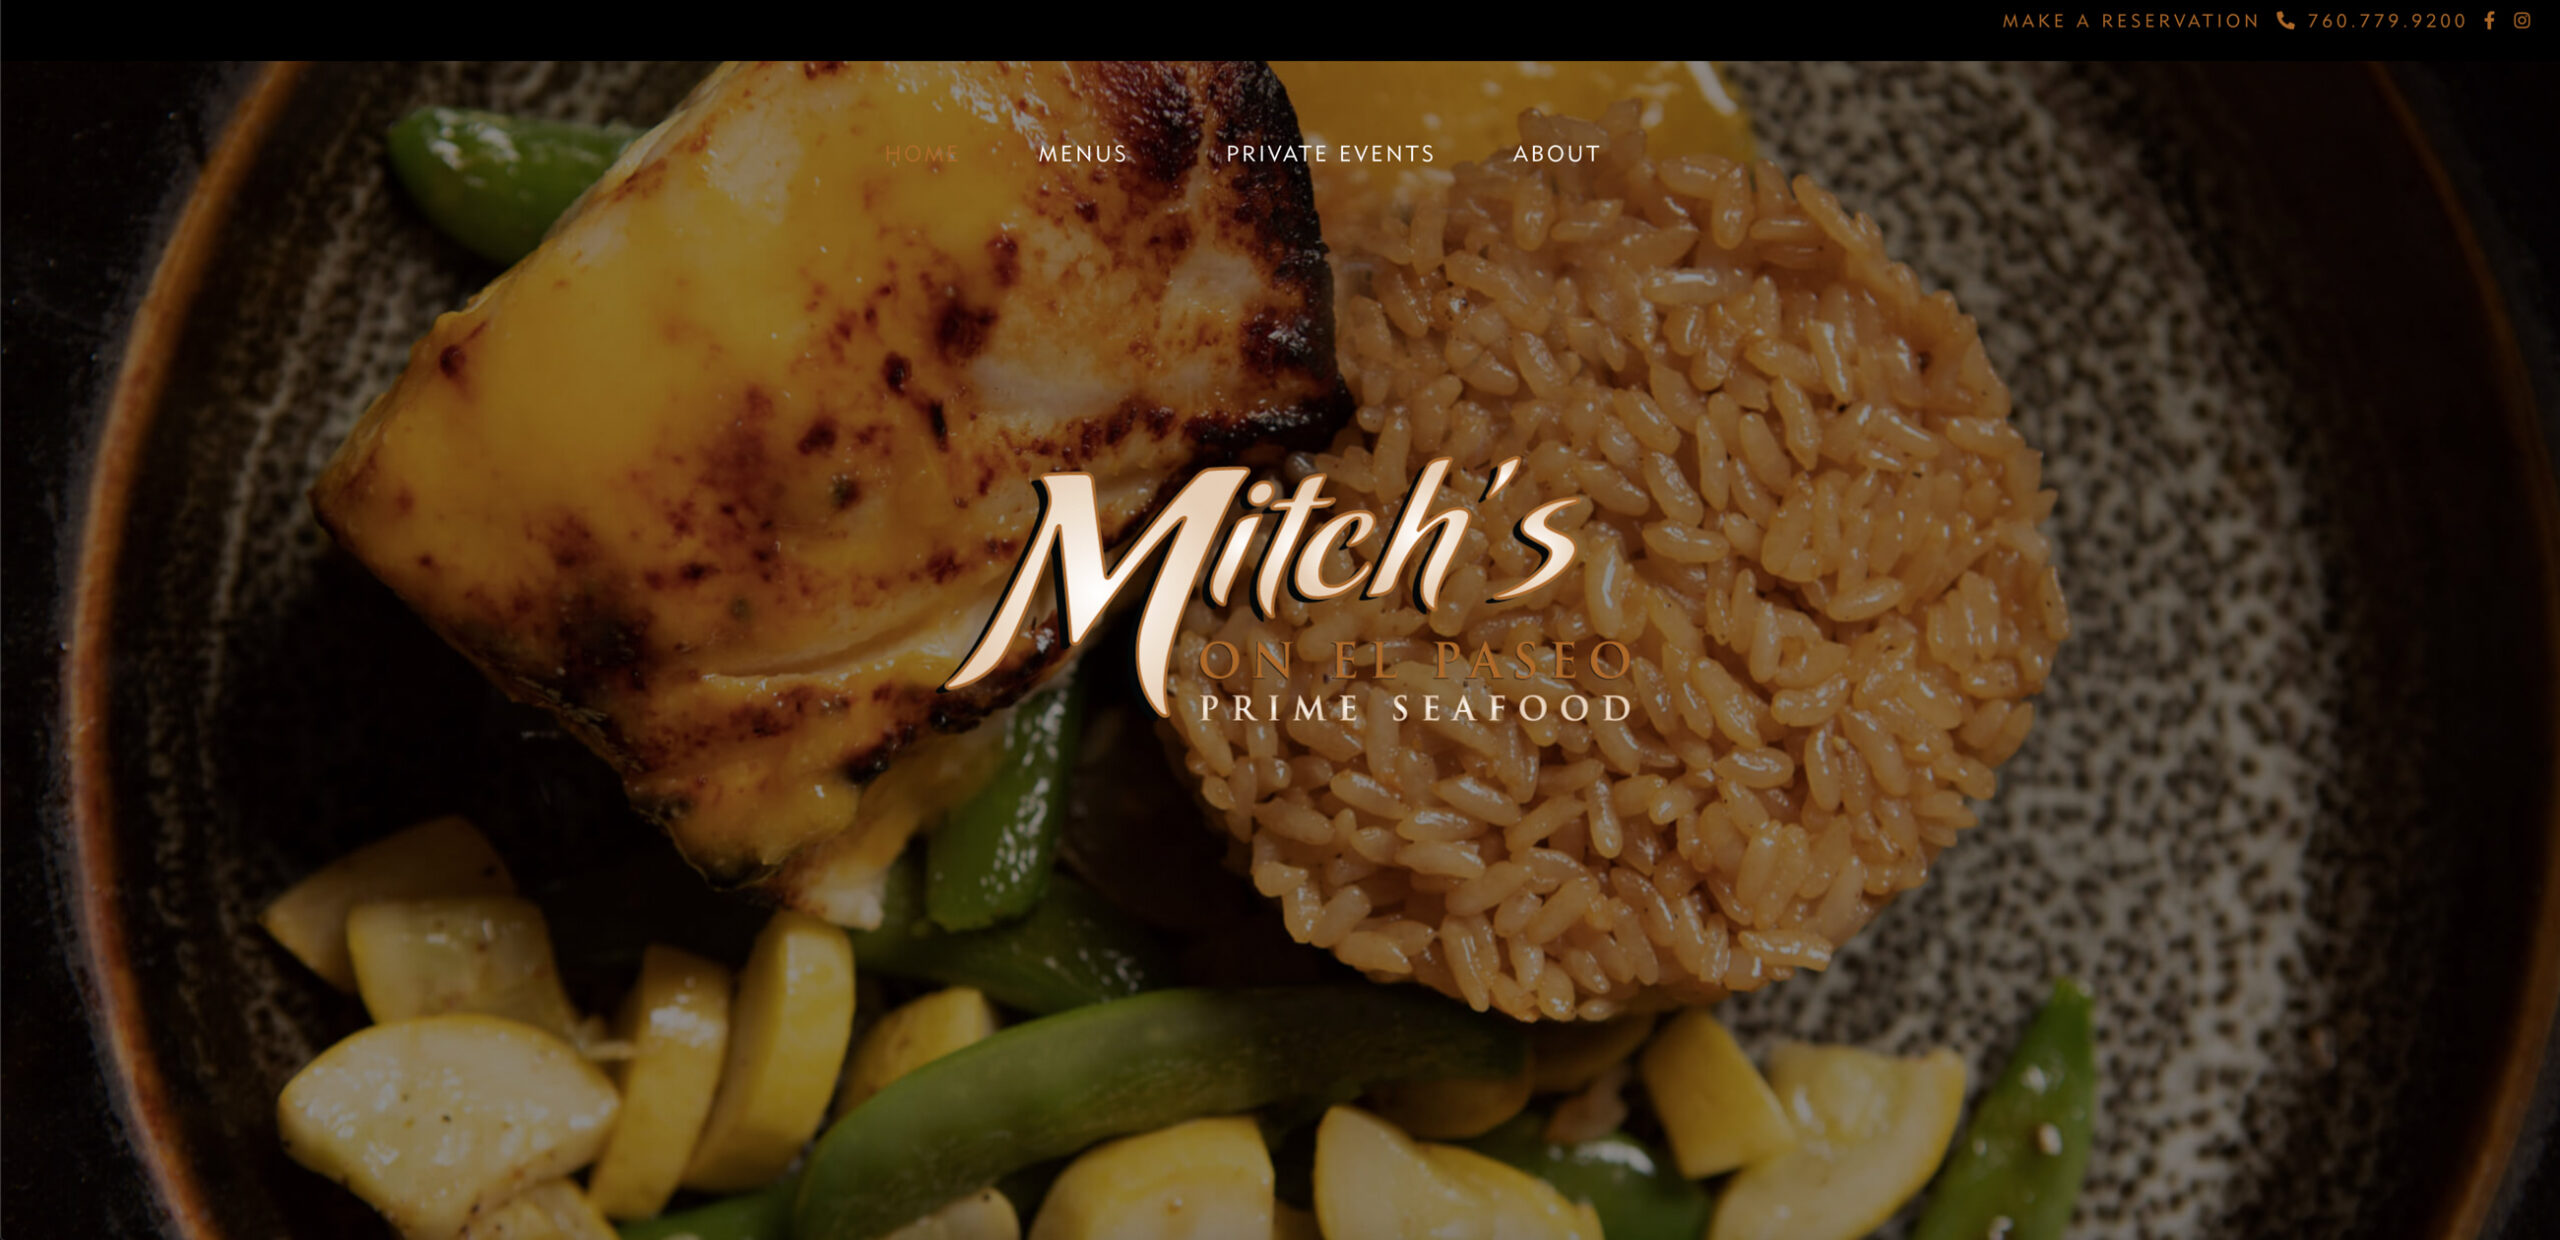 custom website design by kaminsky productions for mitch's on el paseo in palm desert